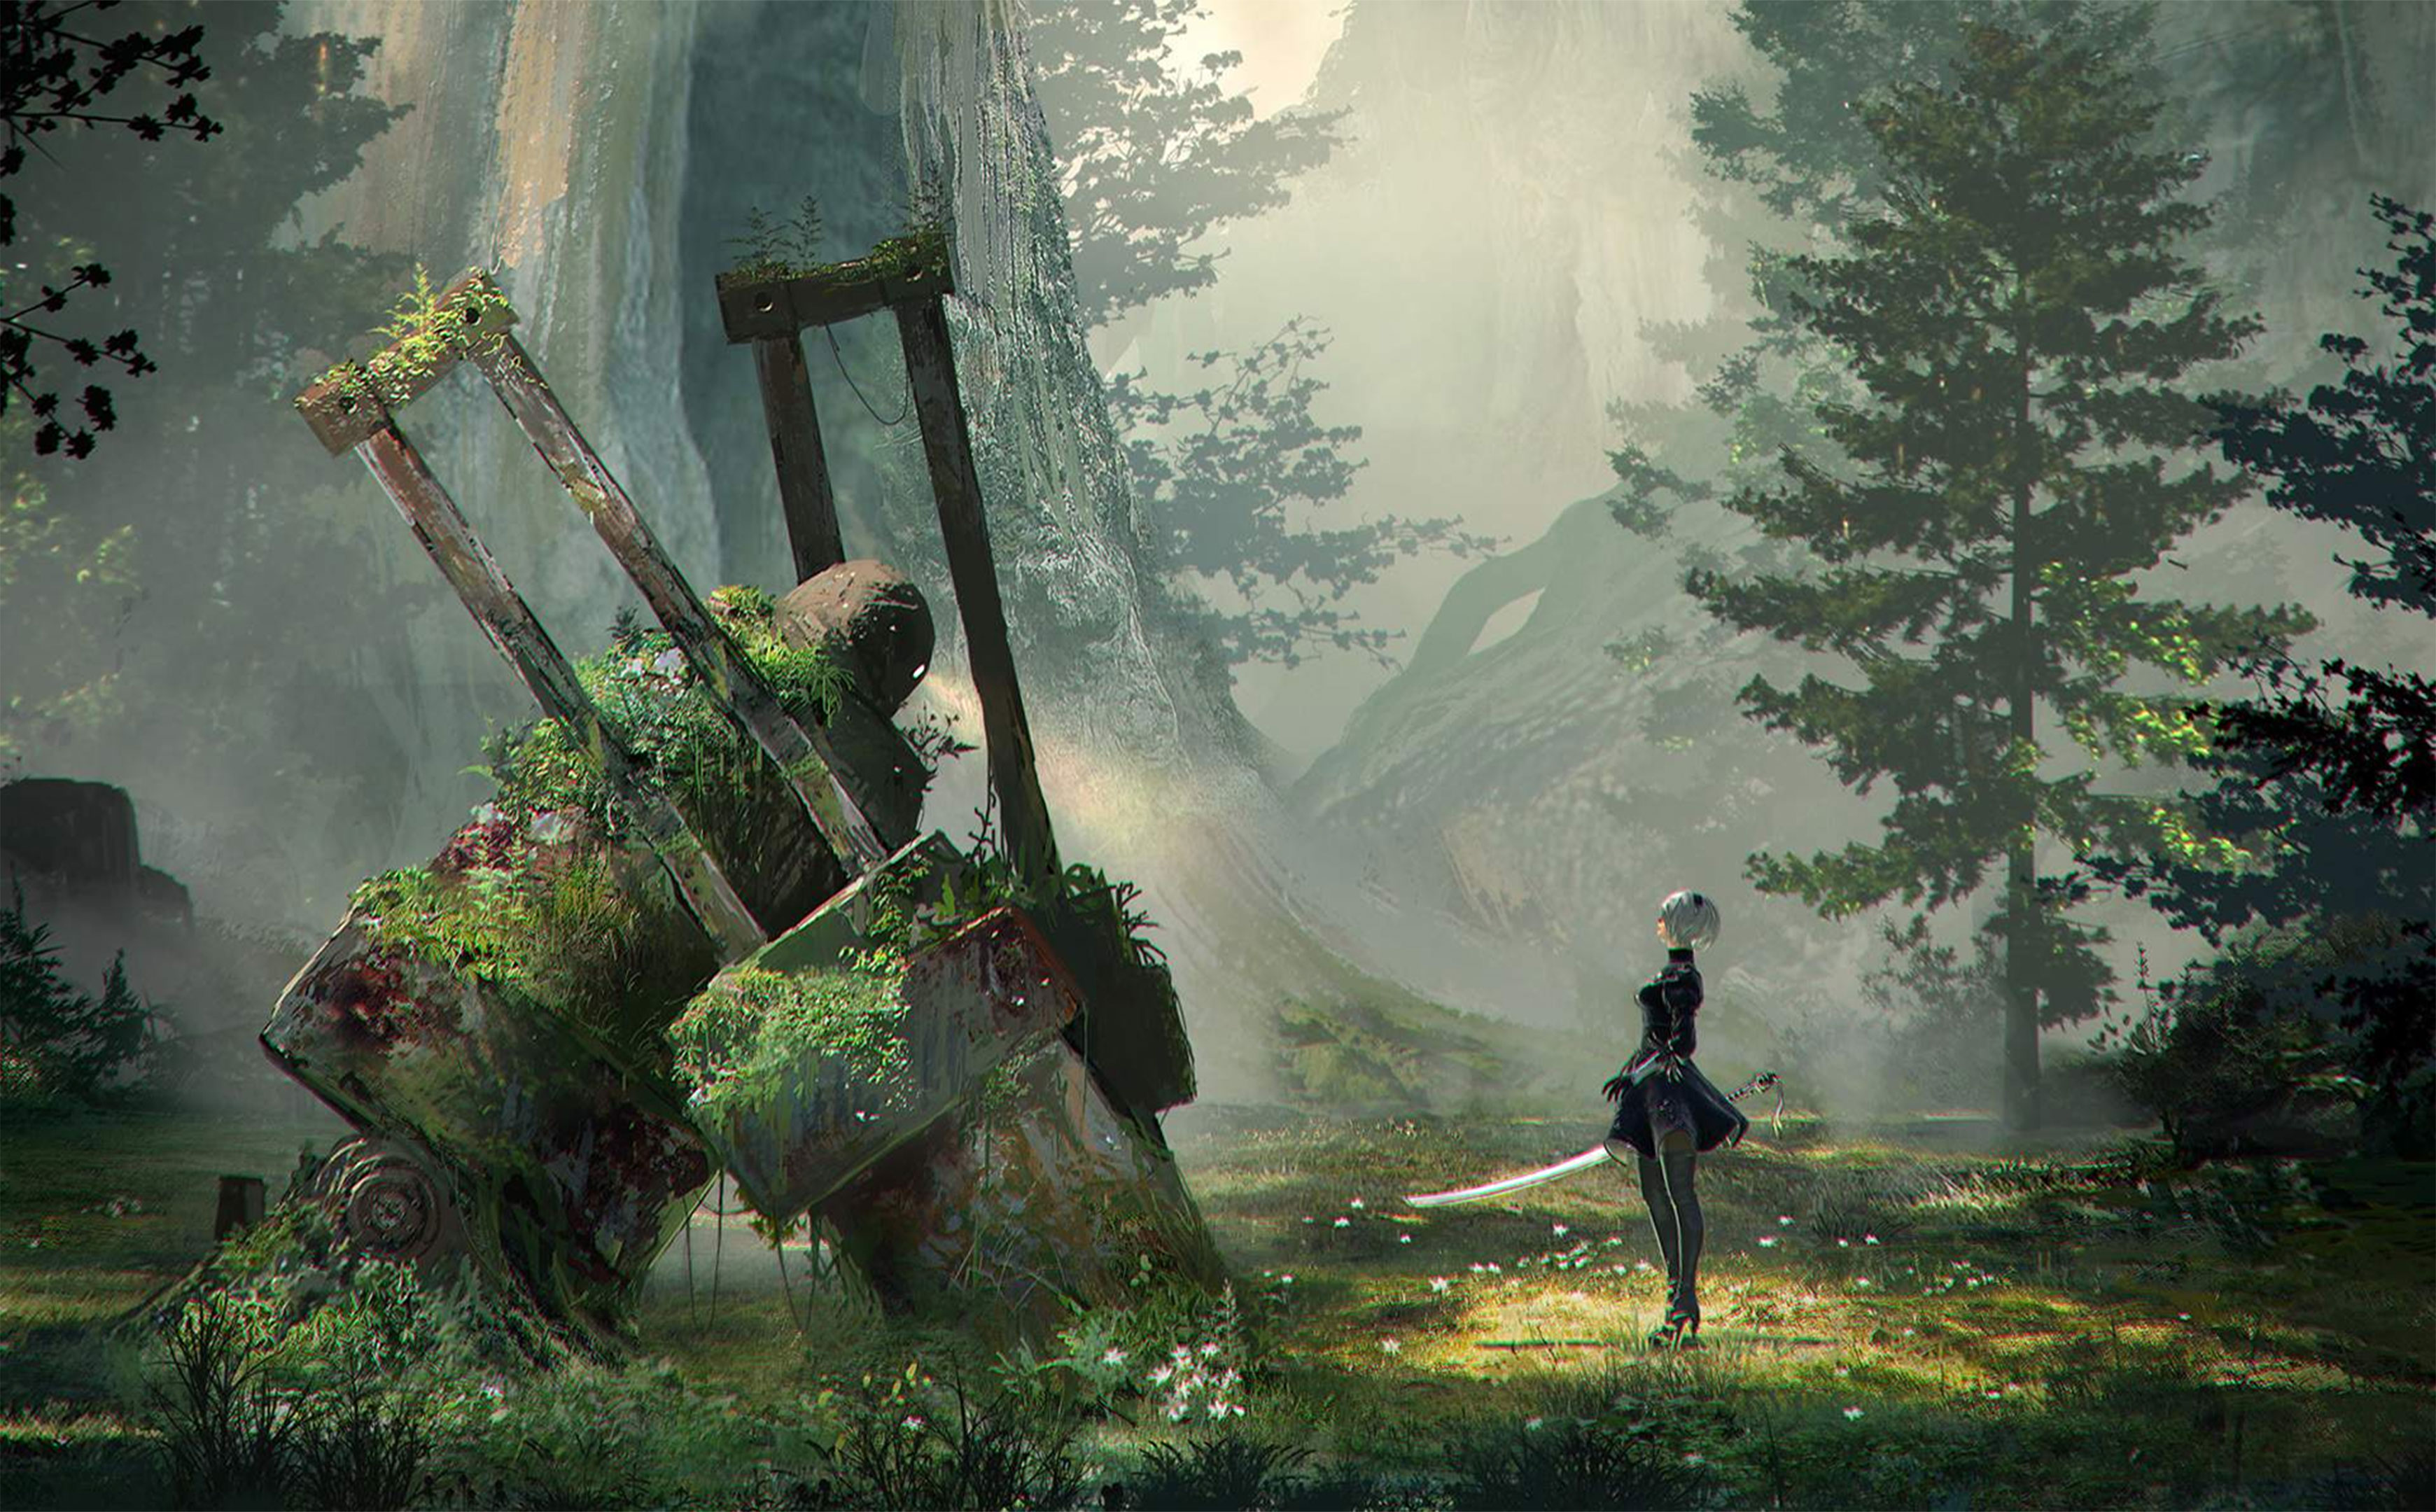 4k Wallpapers For Pc: Nier Automata Wallpapers In Ultra HD